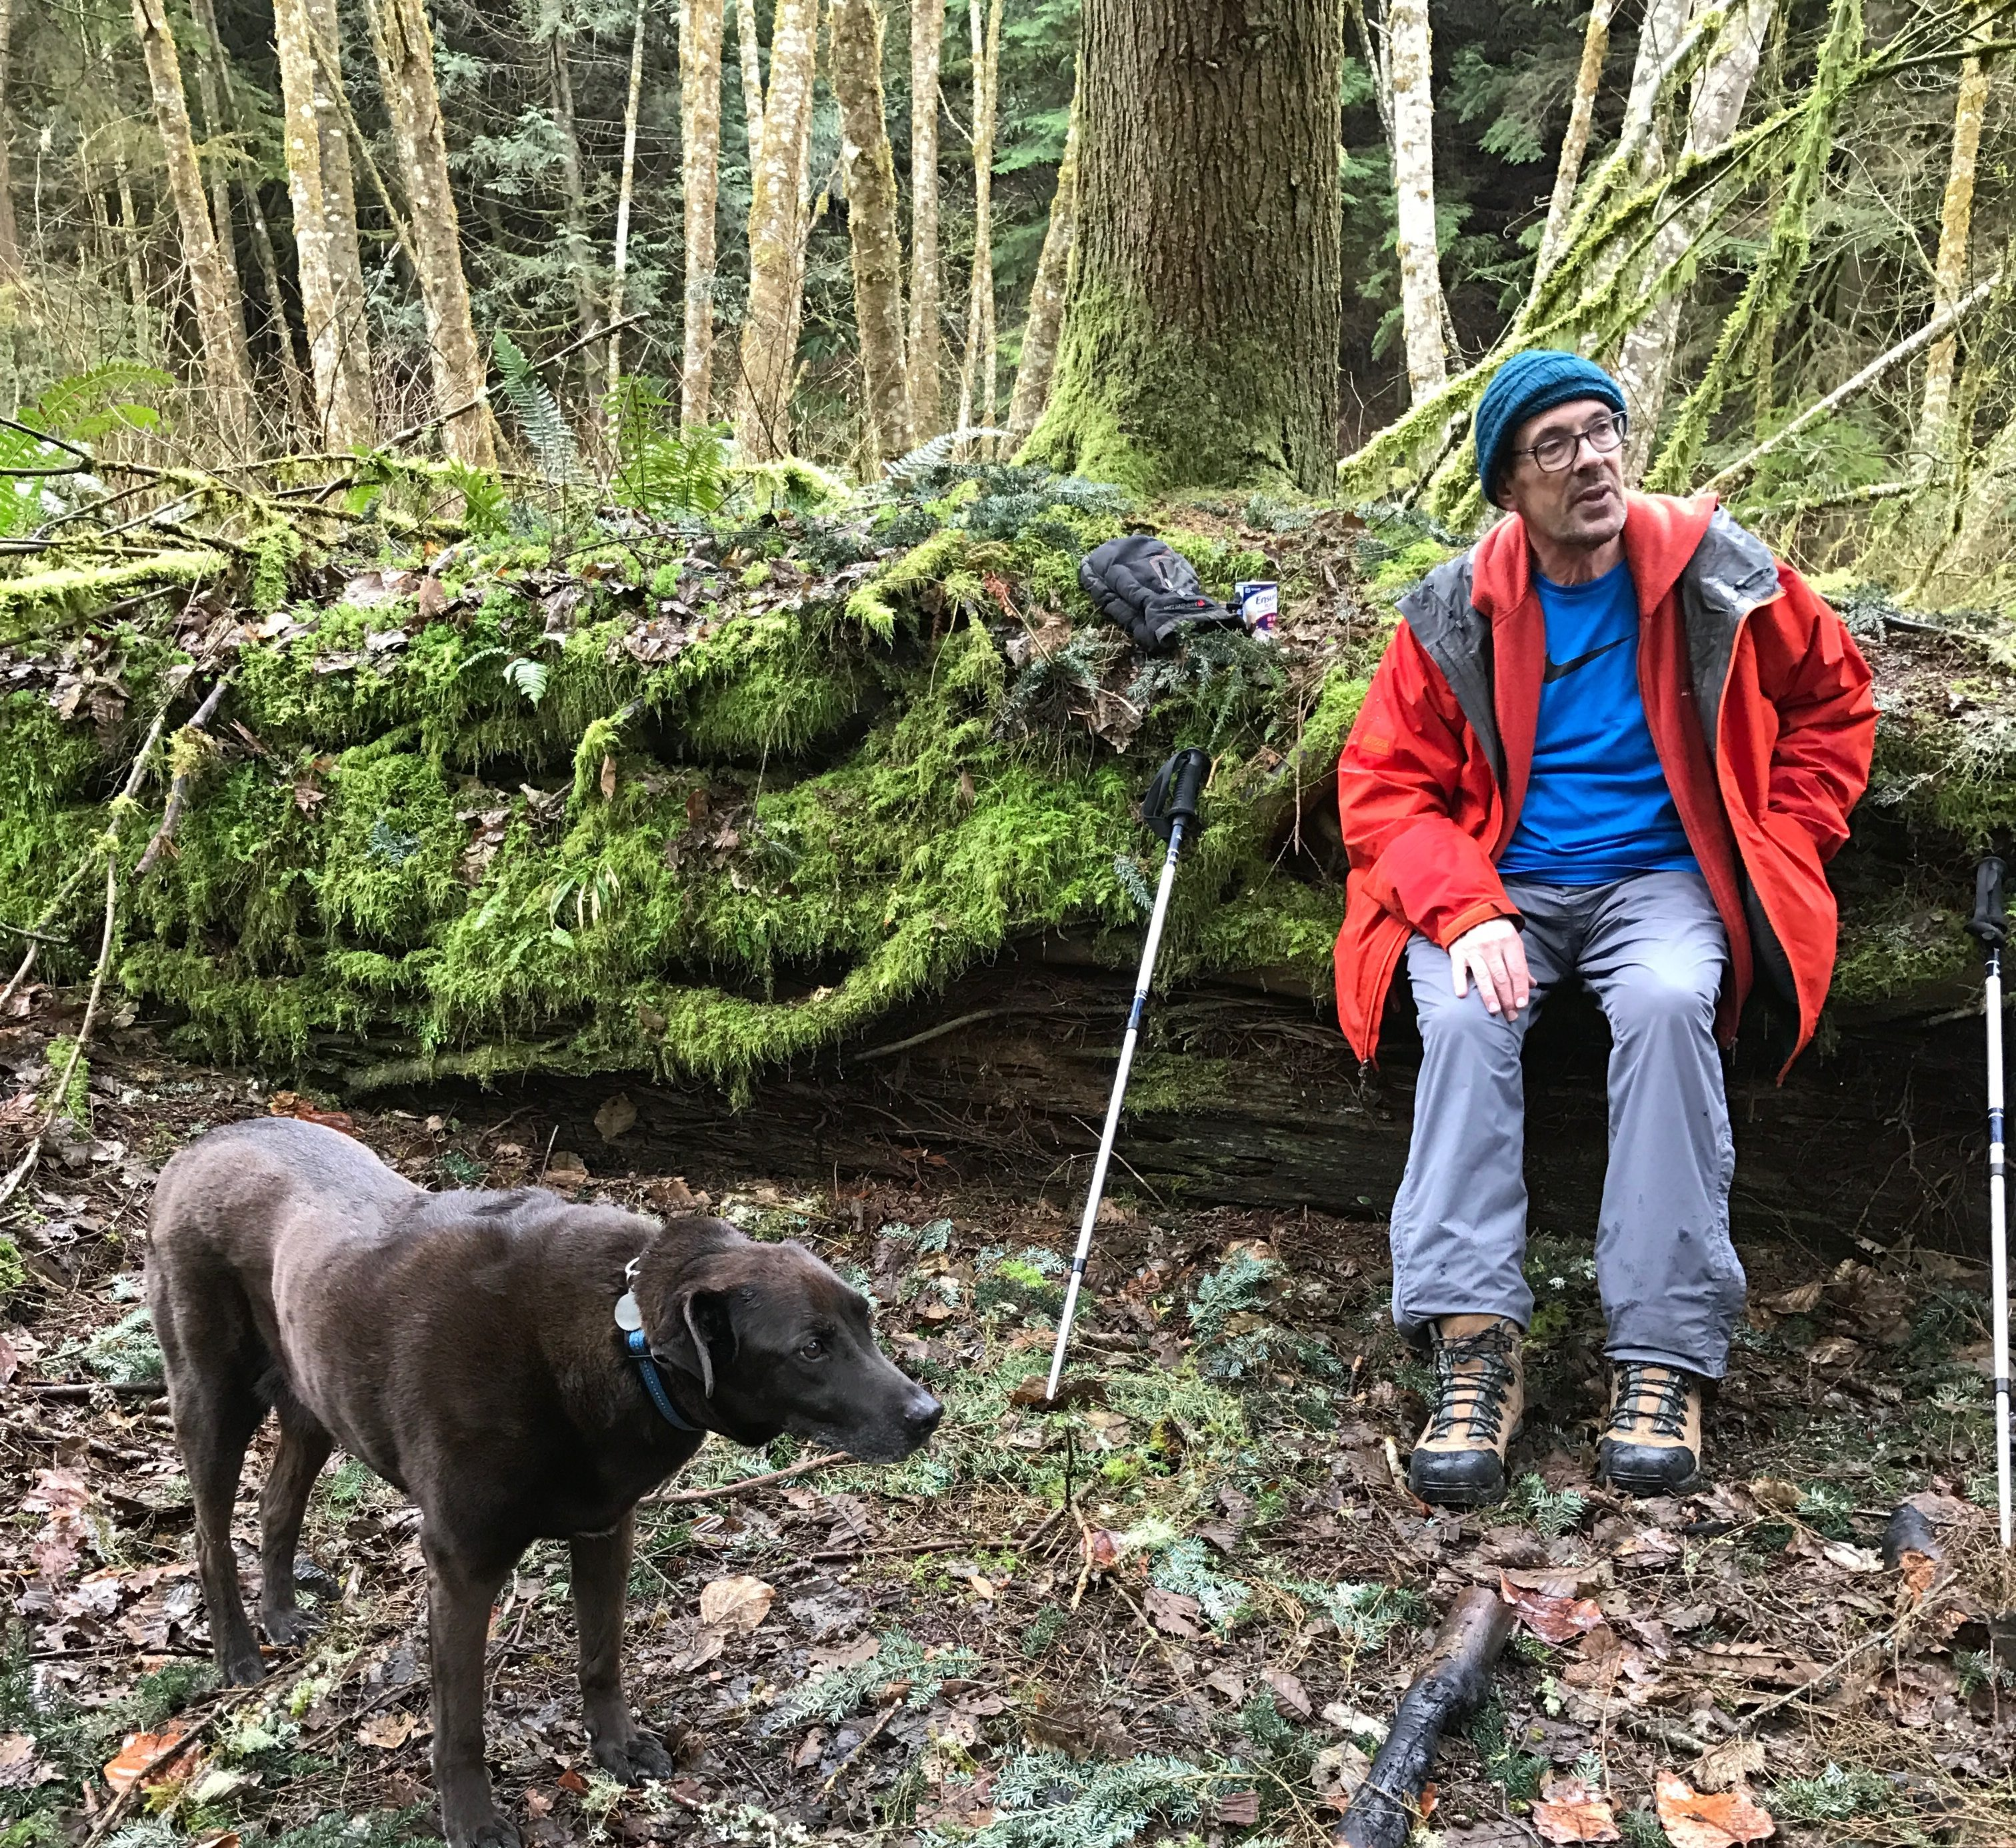 Hikers pause to rest; man and dog sit in the woods